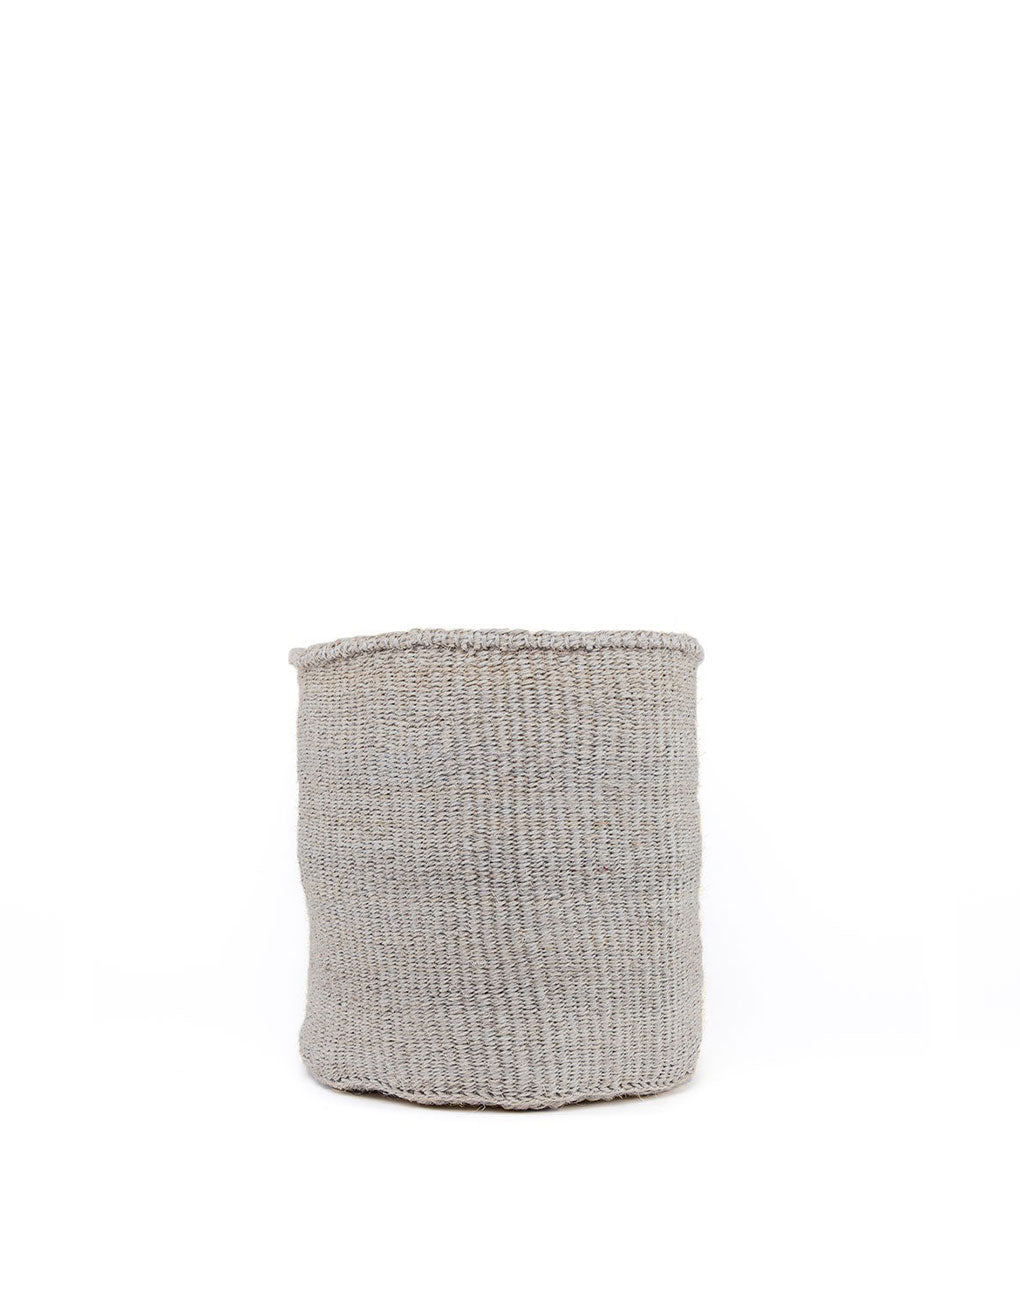 11in Solid Sisal Basket - Gray | The Little Market